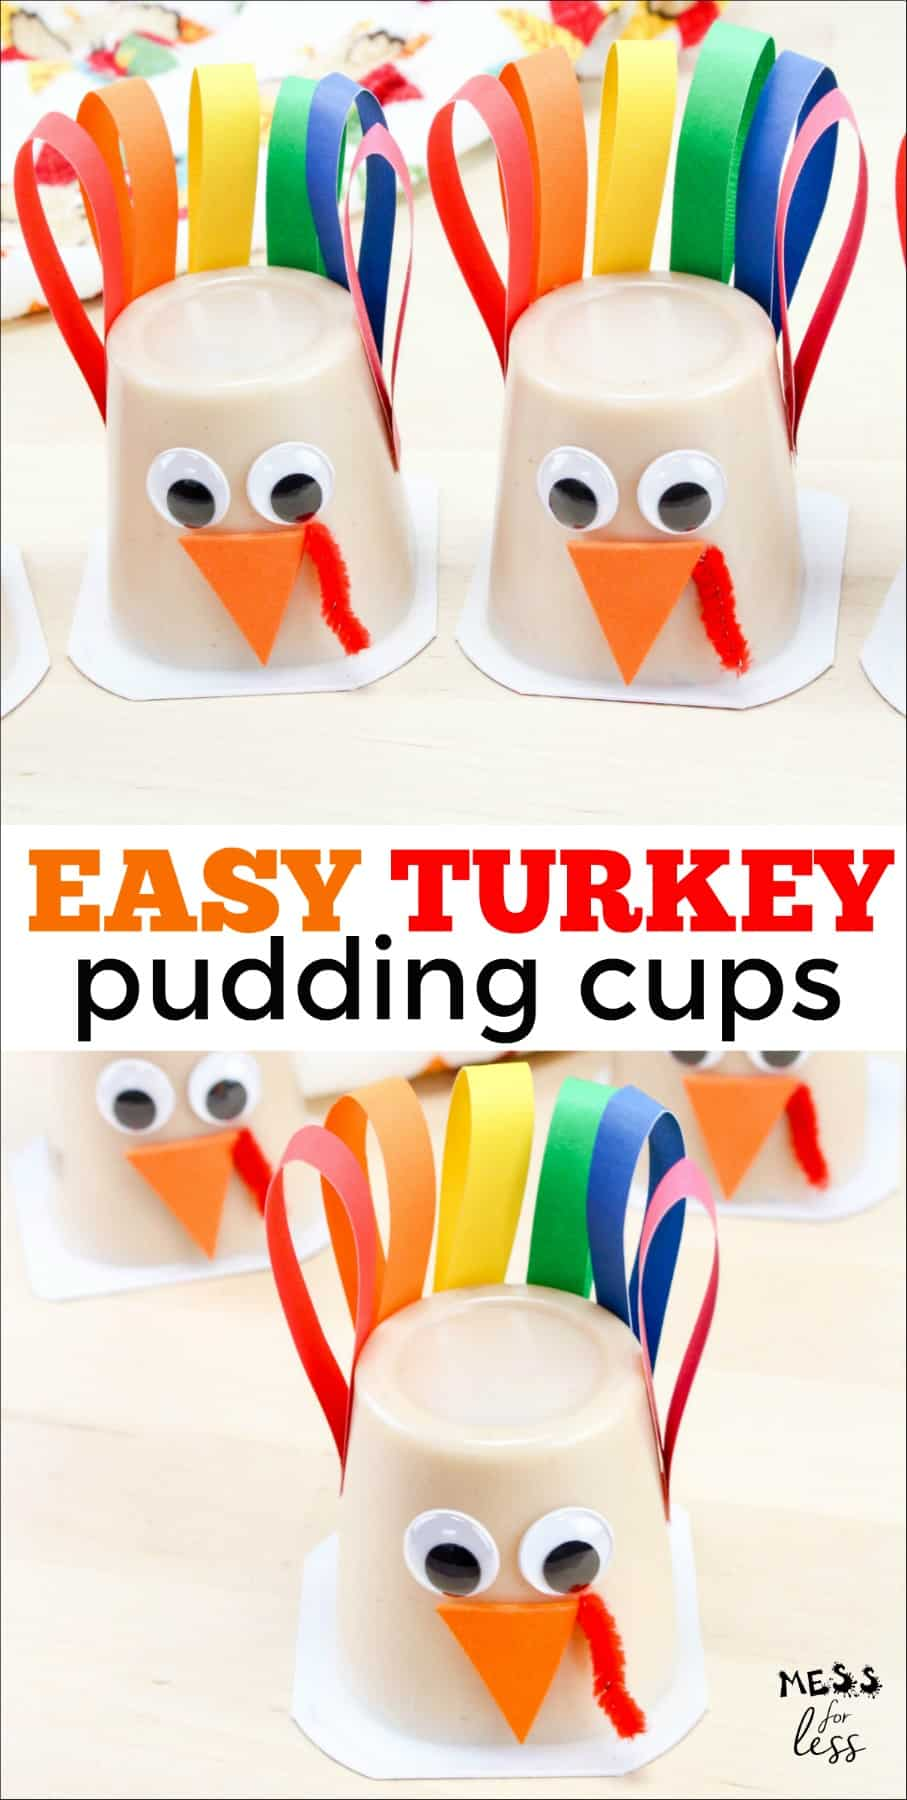 These Turkey Pudding Cups are perfect for a classroom snack for a Thanksgiving party. You can also easily make these for your own Thanksgiving celebration. #Thanksgiving #ThanksgivingSnack